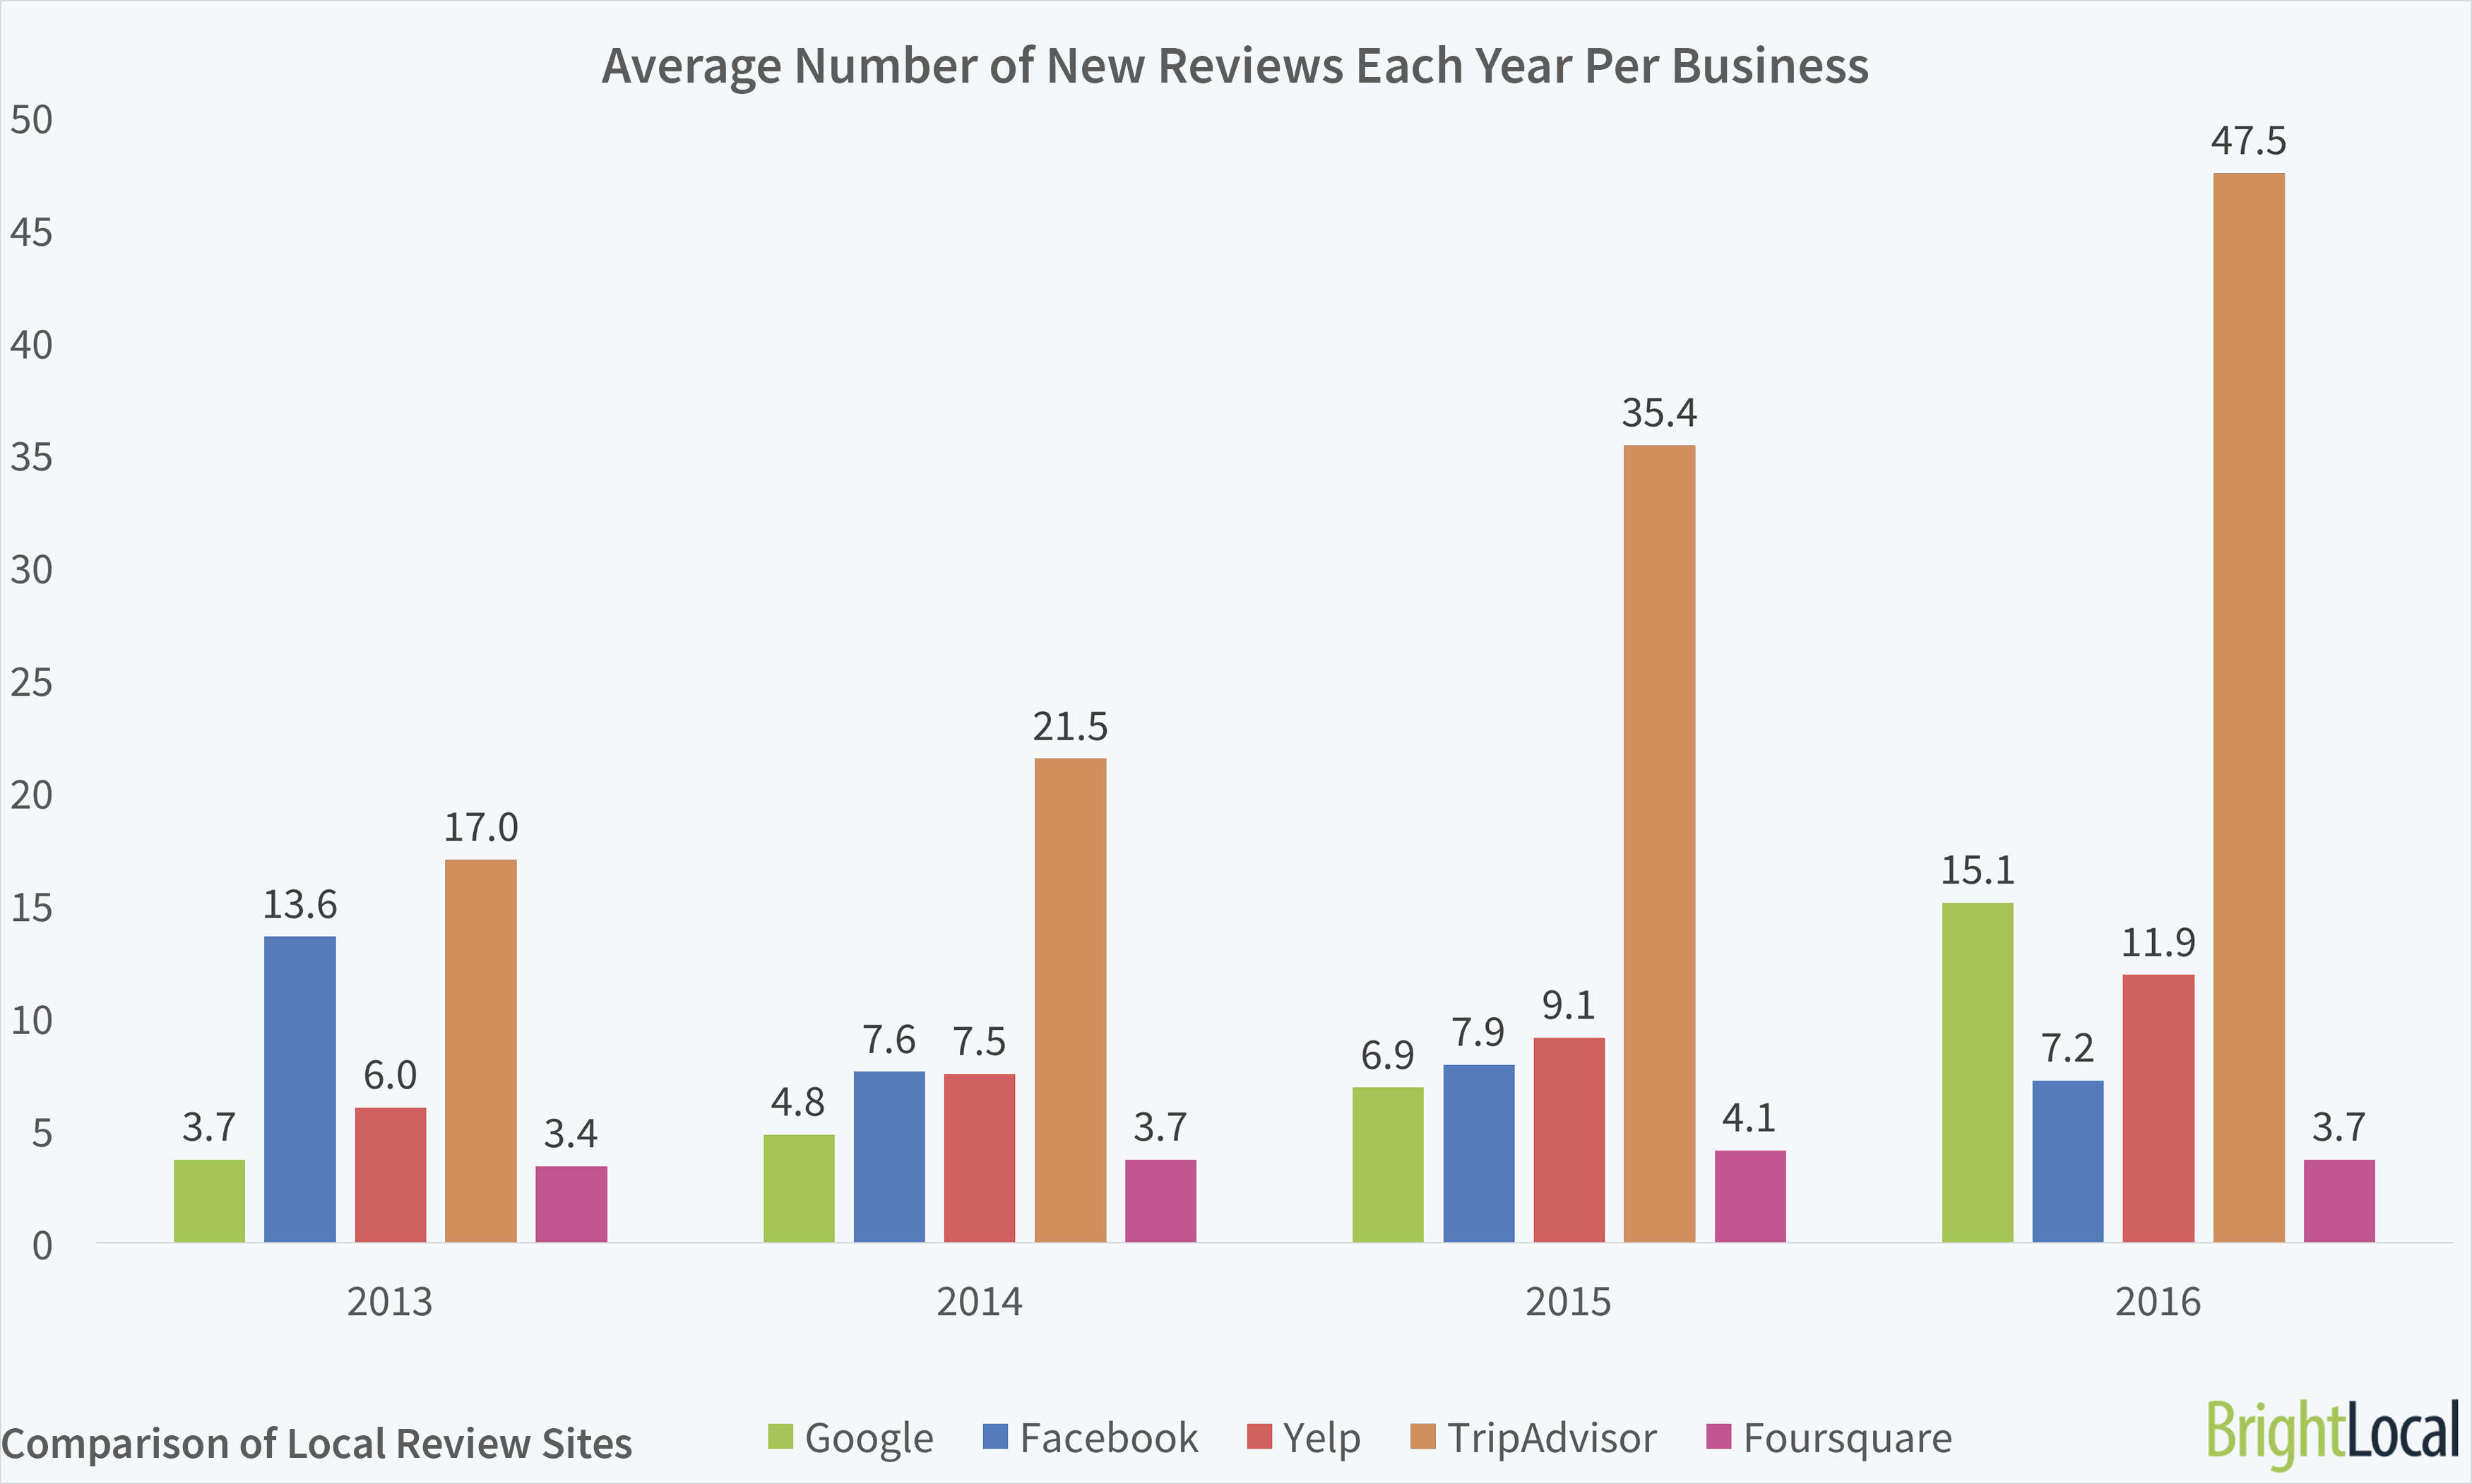 Average Number of Reviews Per Business